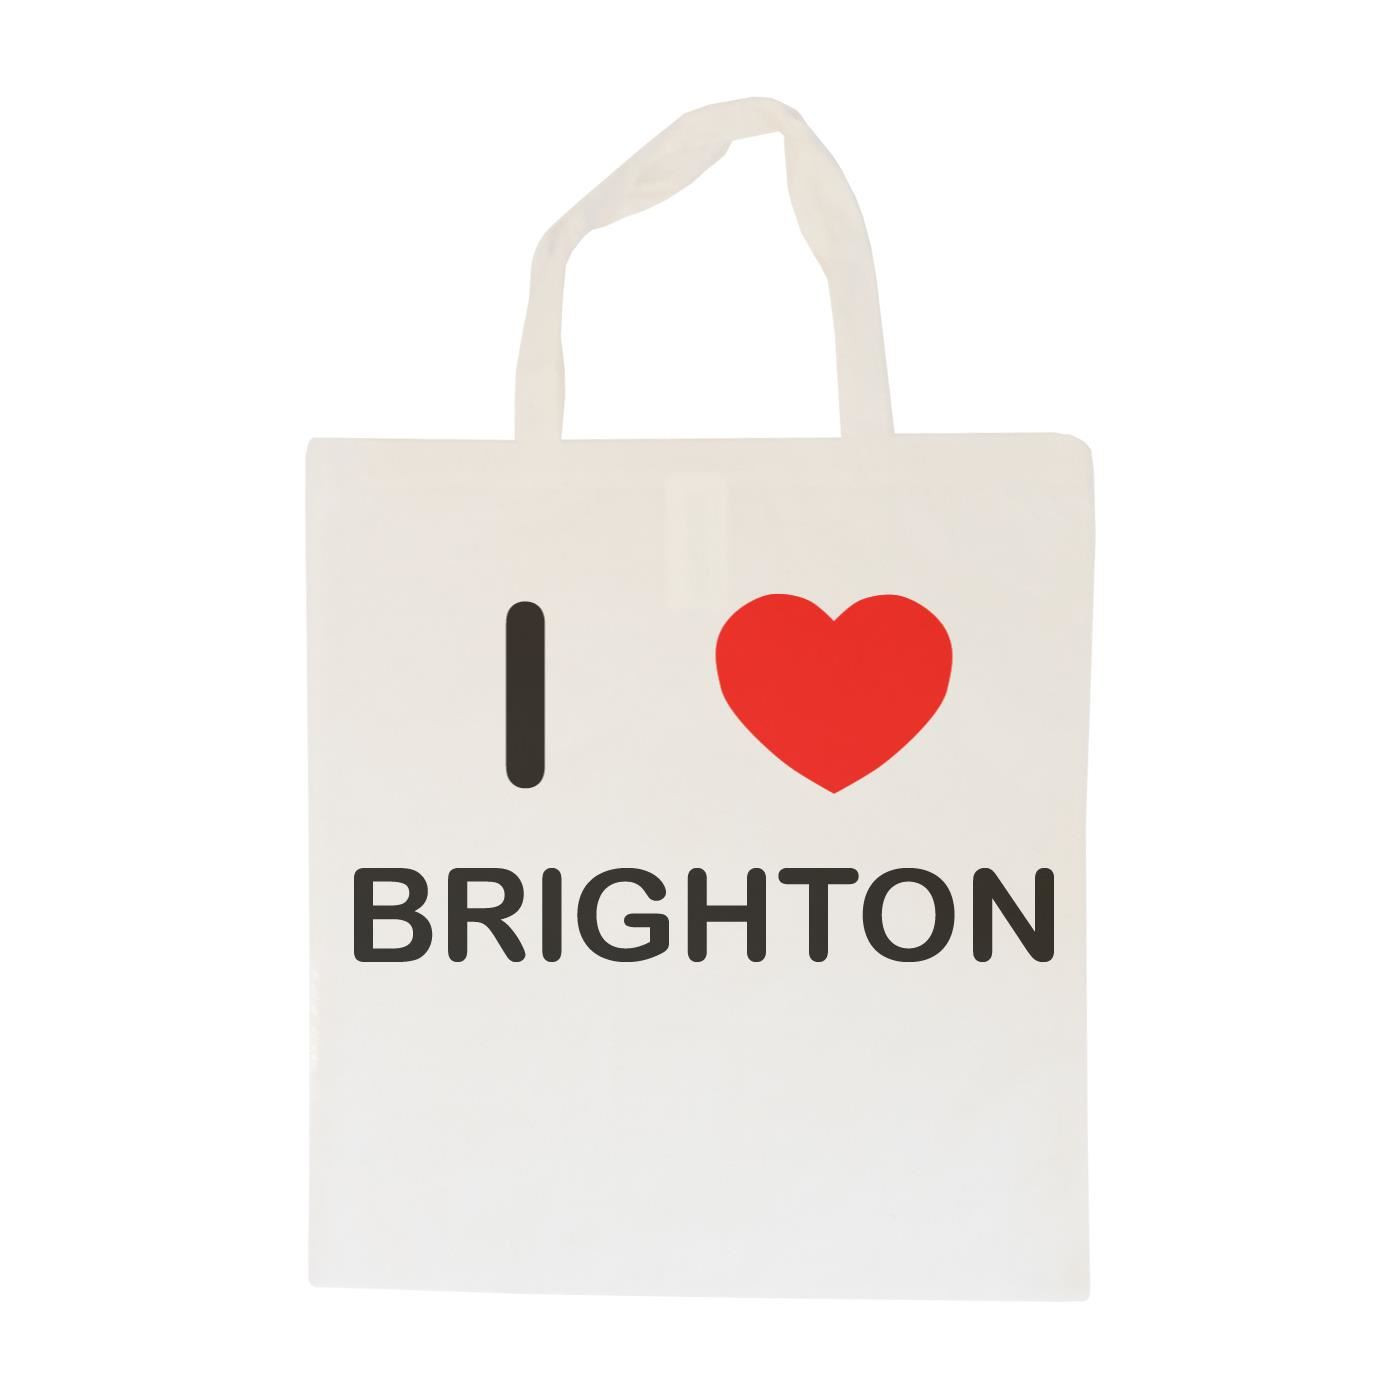 I Love Brighton - Cotton Bag | Size choice Tote, Shopper or Sling